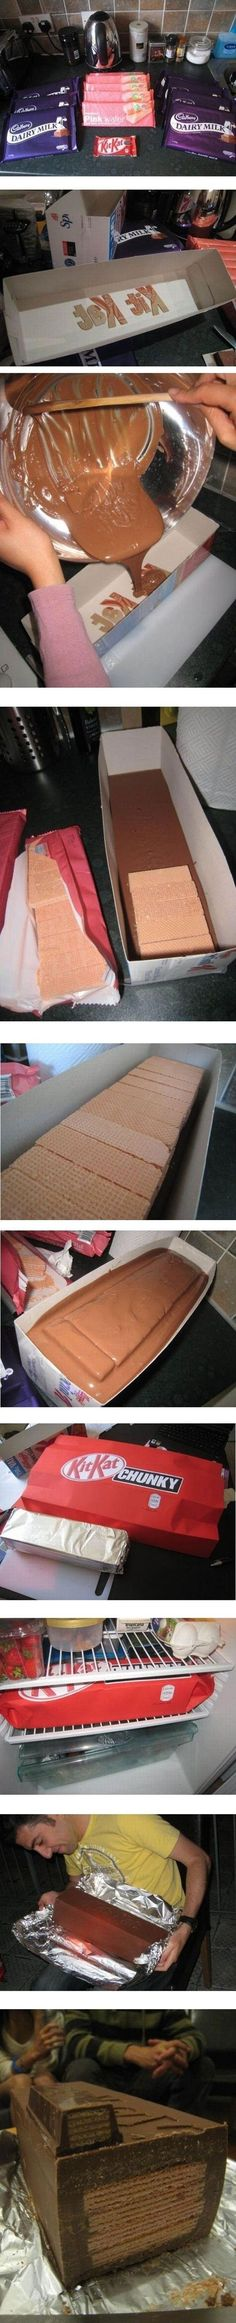 HOW TO MAKE: GIANT KIT KAT BAR This would be a fun gift